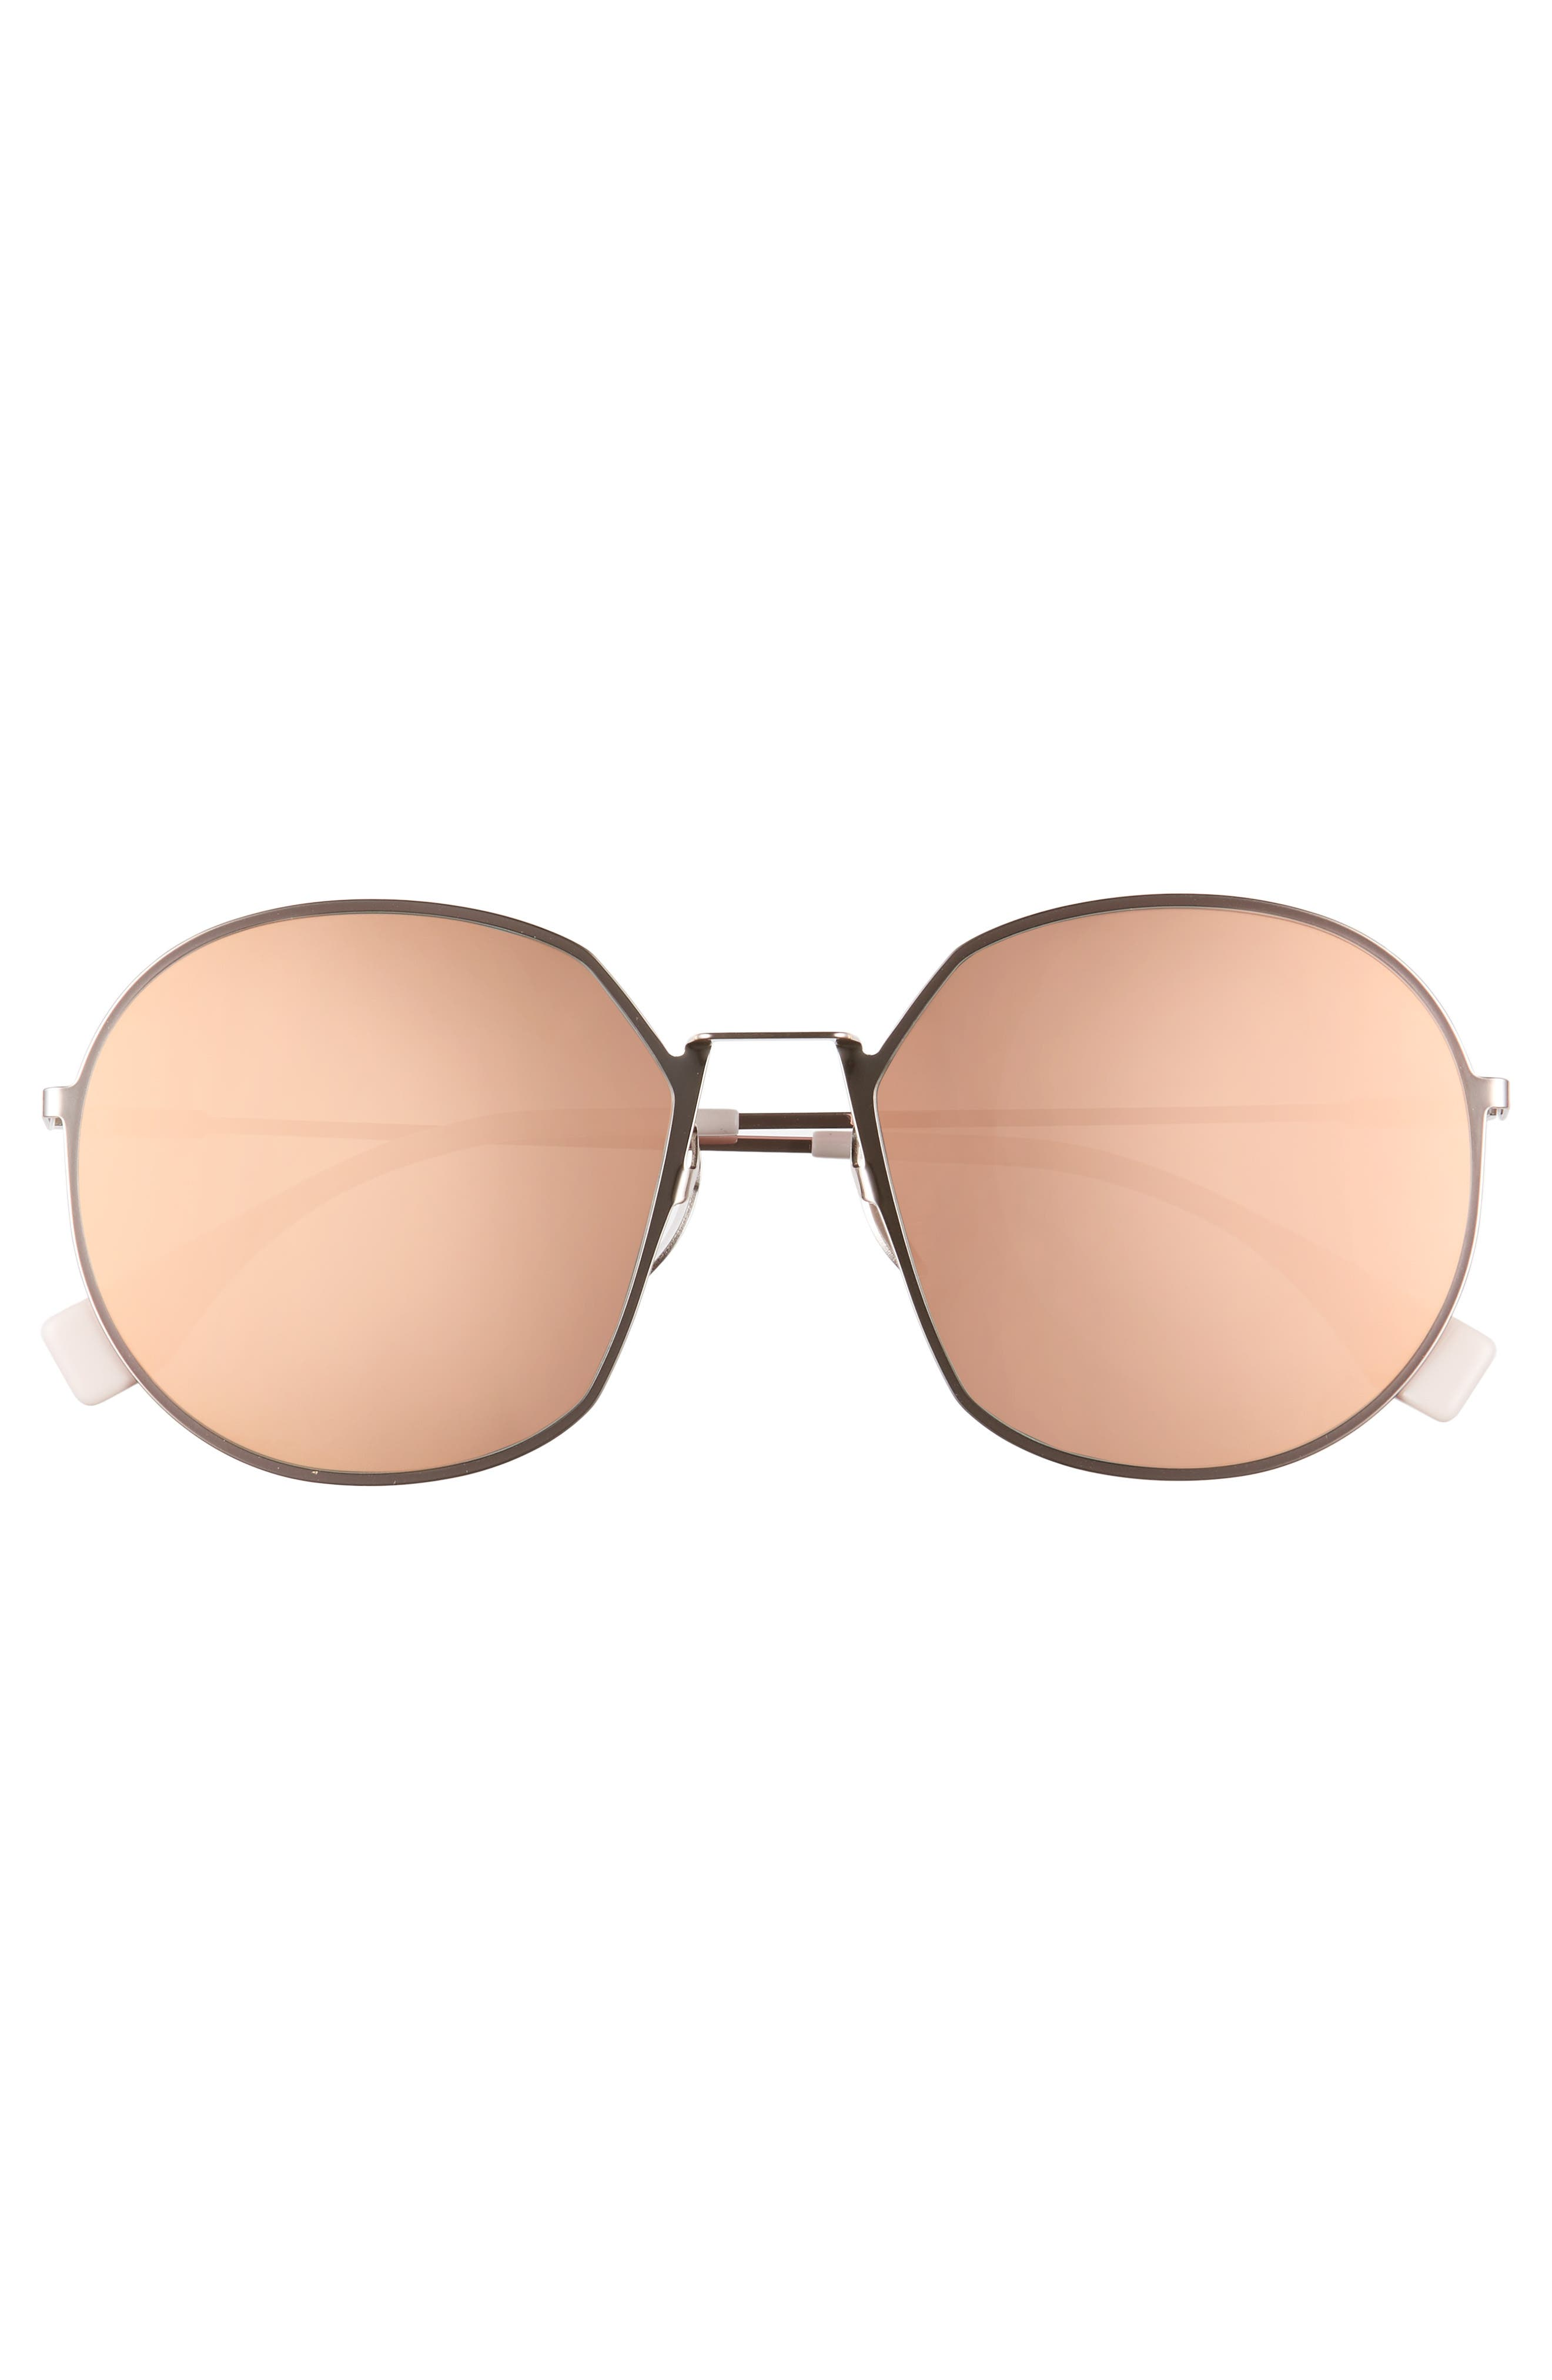 59mm Round Special Fit Sunglasses,                             Alternate thumbnail 11, color,